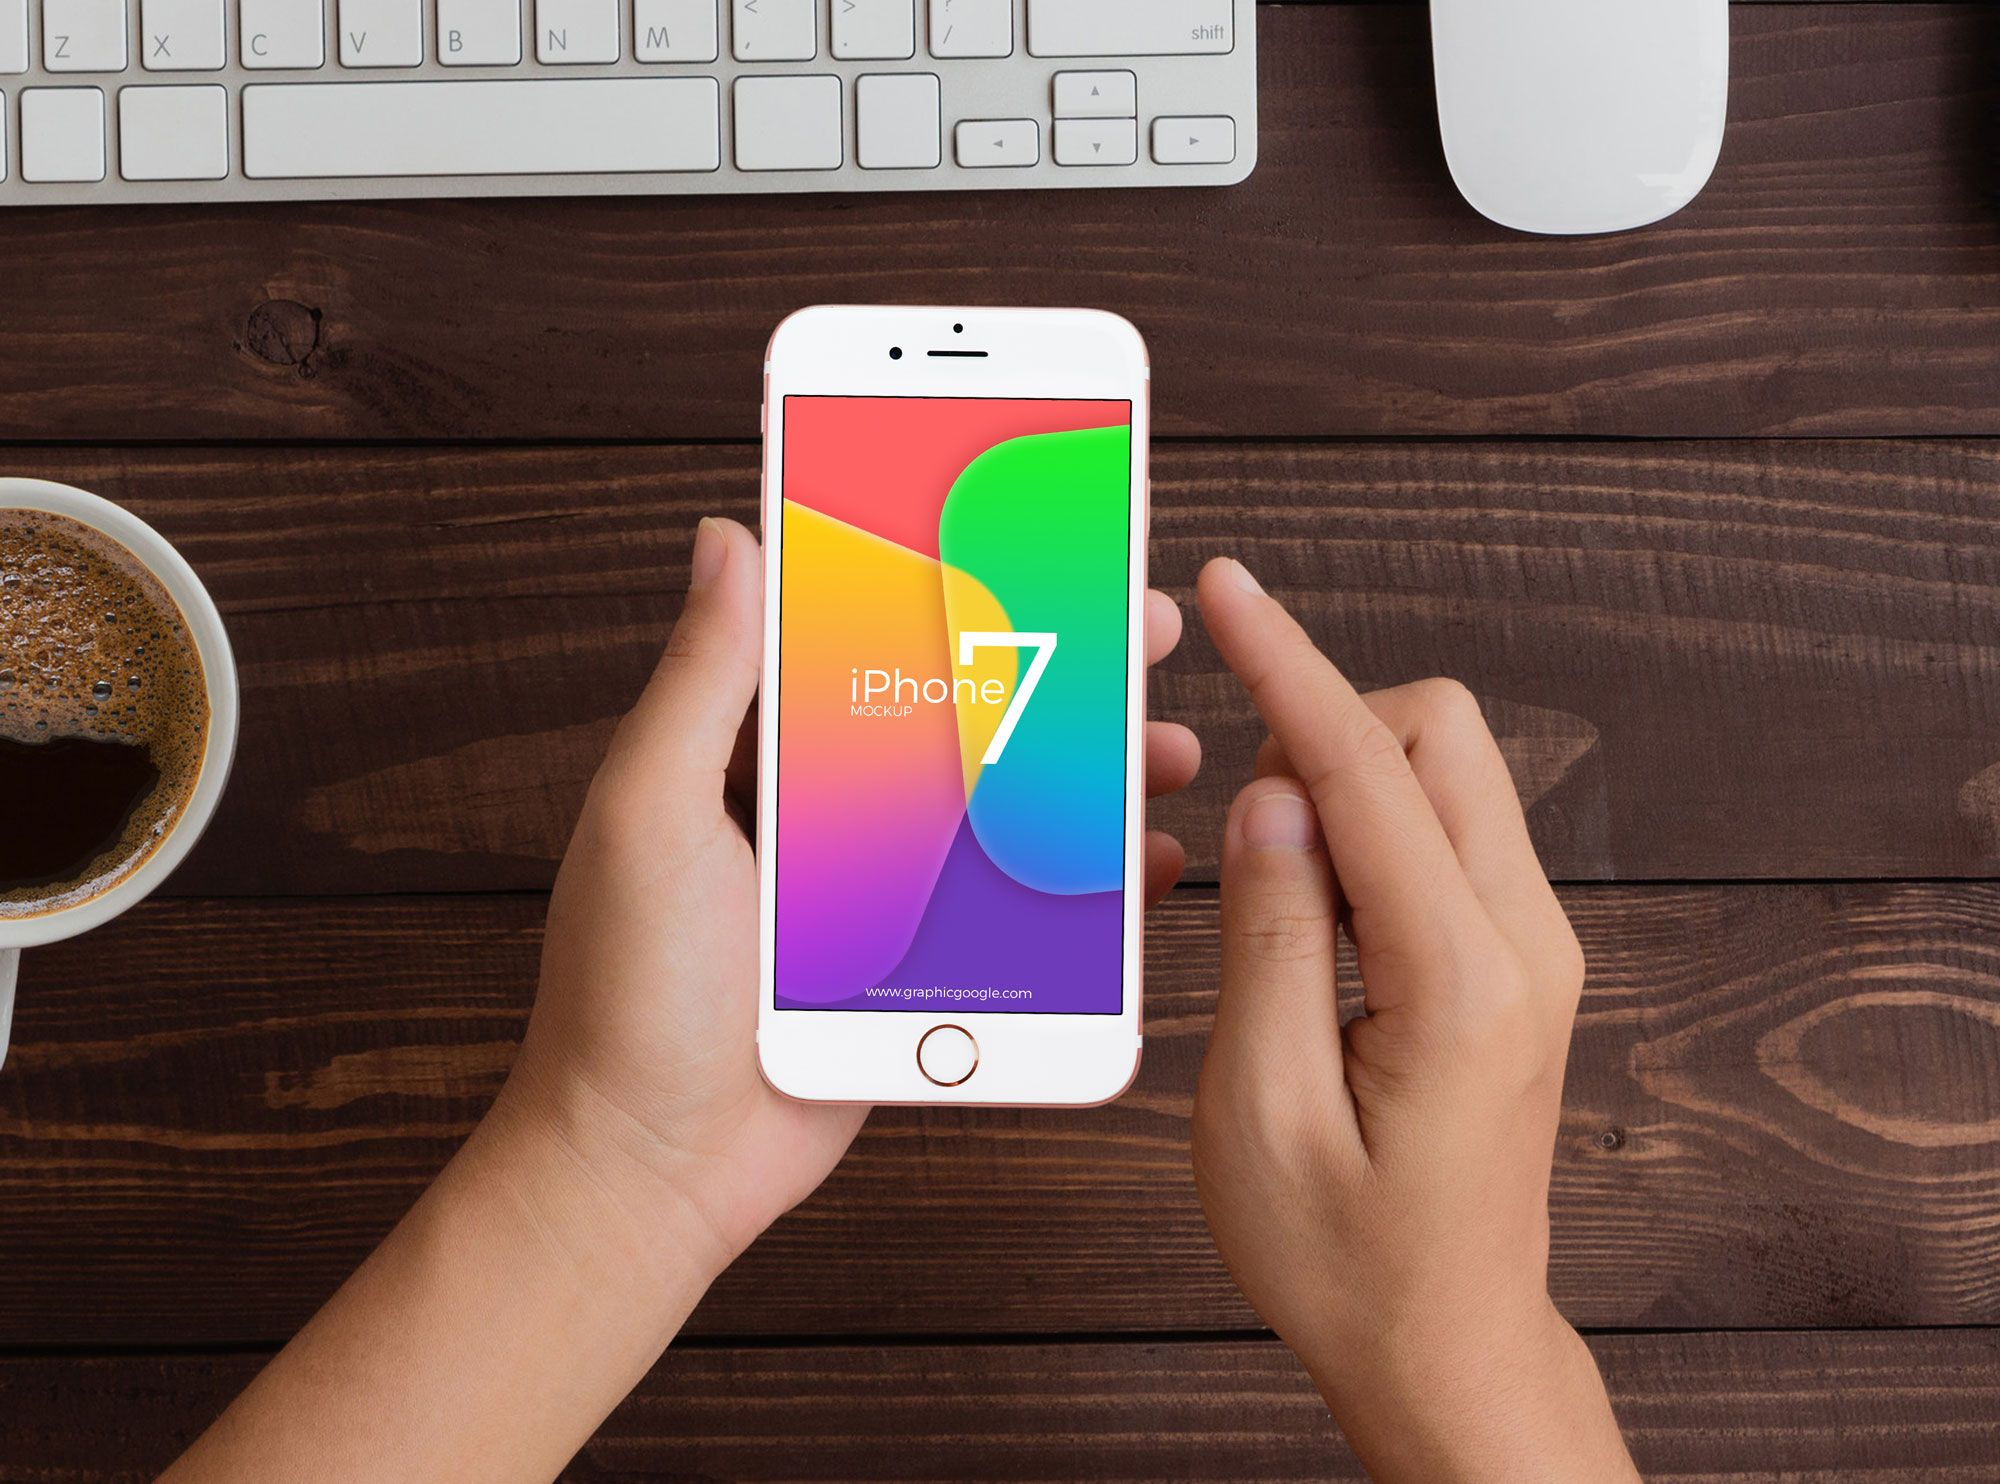 1279+ Holding Iphone Mockup Free Easy to Edit